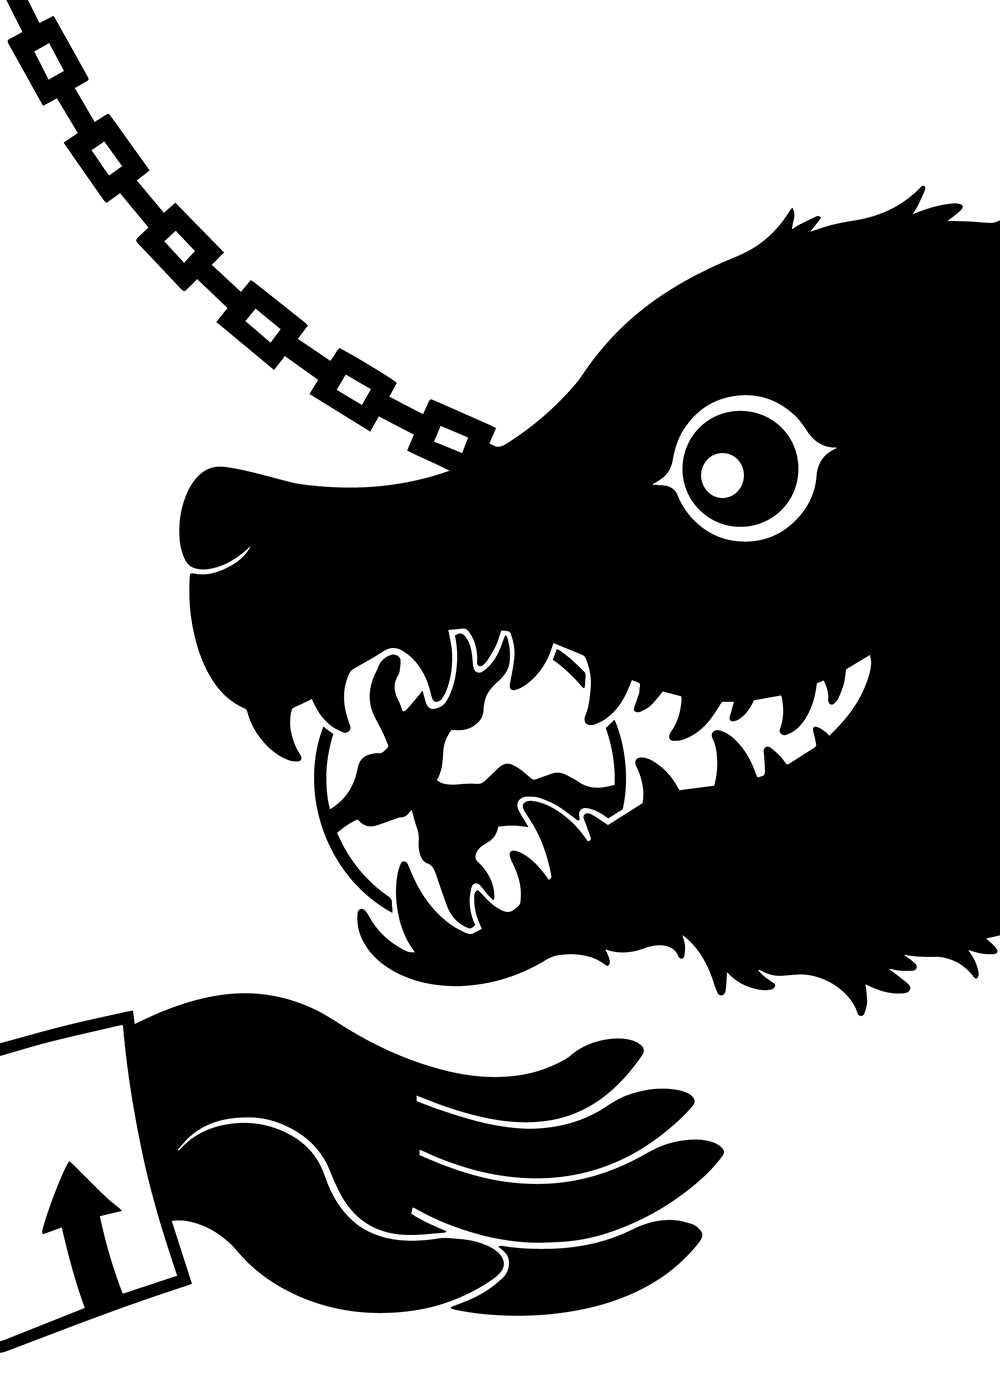 Scp Artwork Hub Scp Foundation Art Contest Hub - Series 2 - Scp Foundation